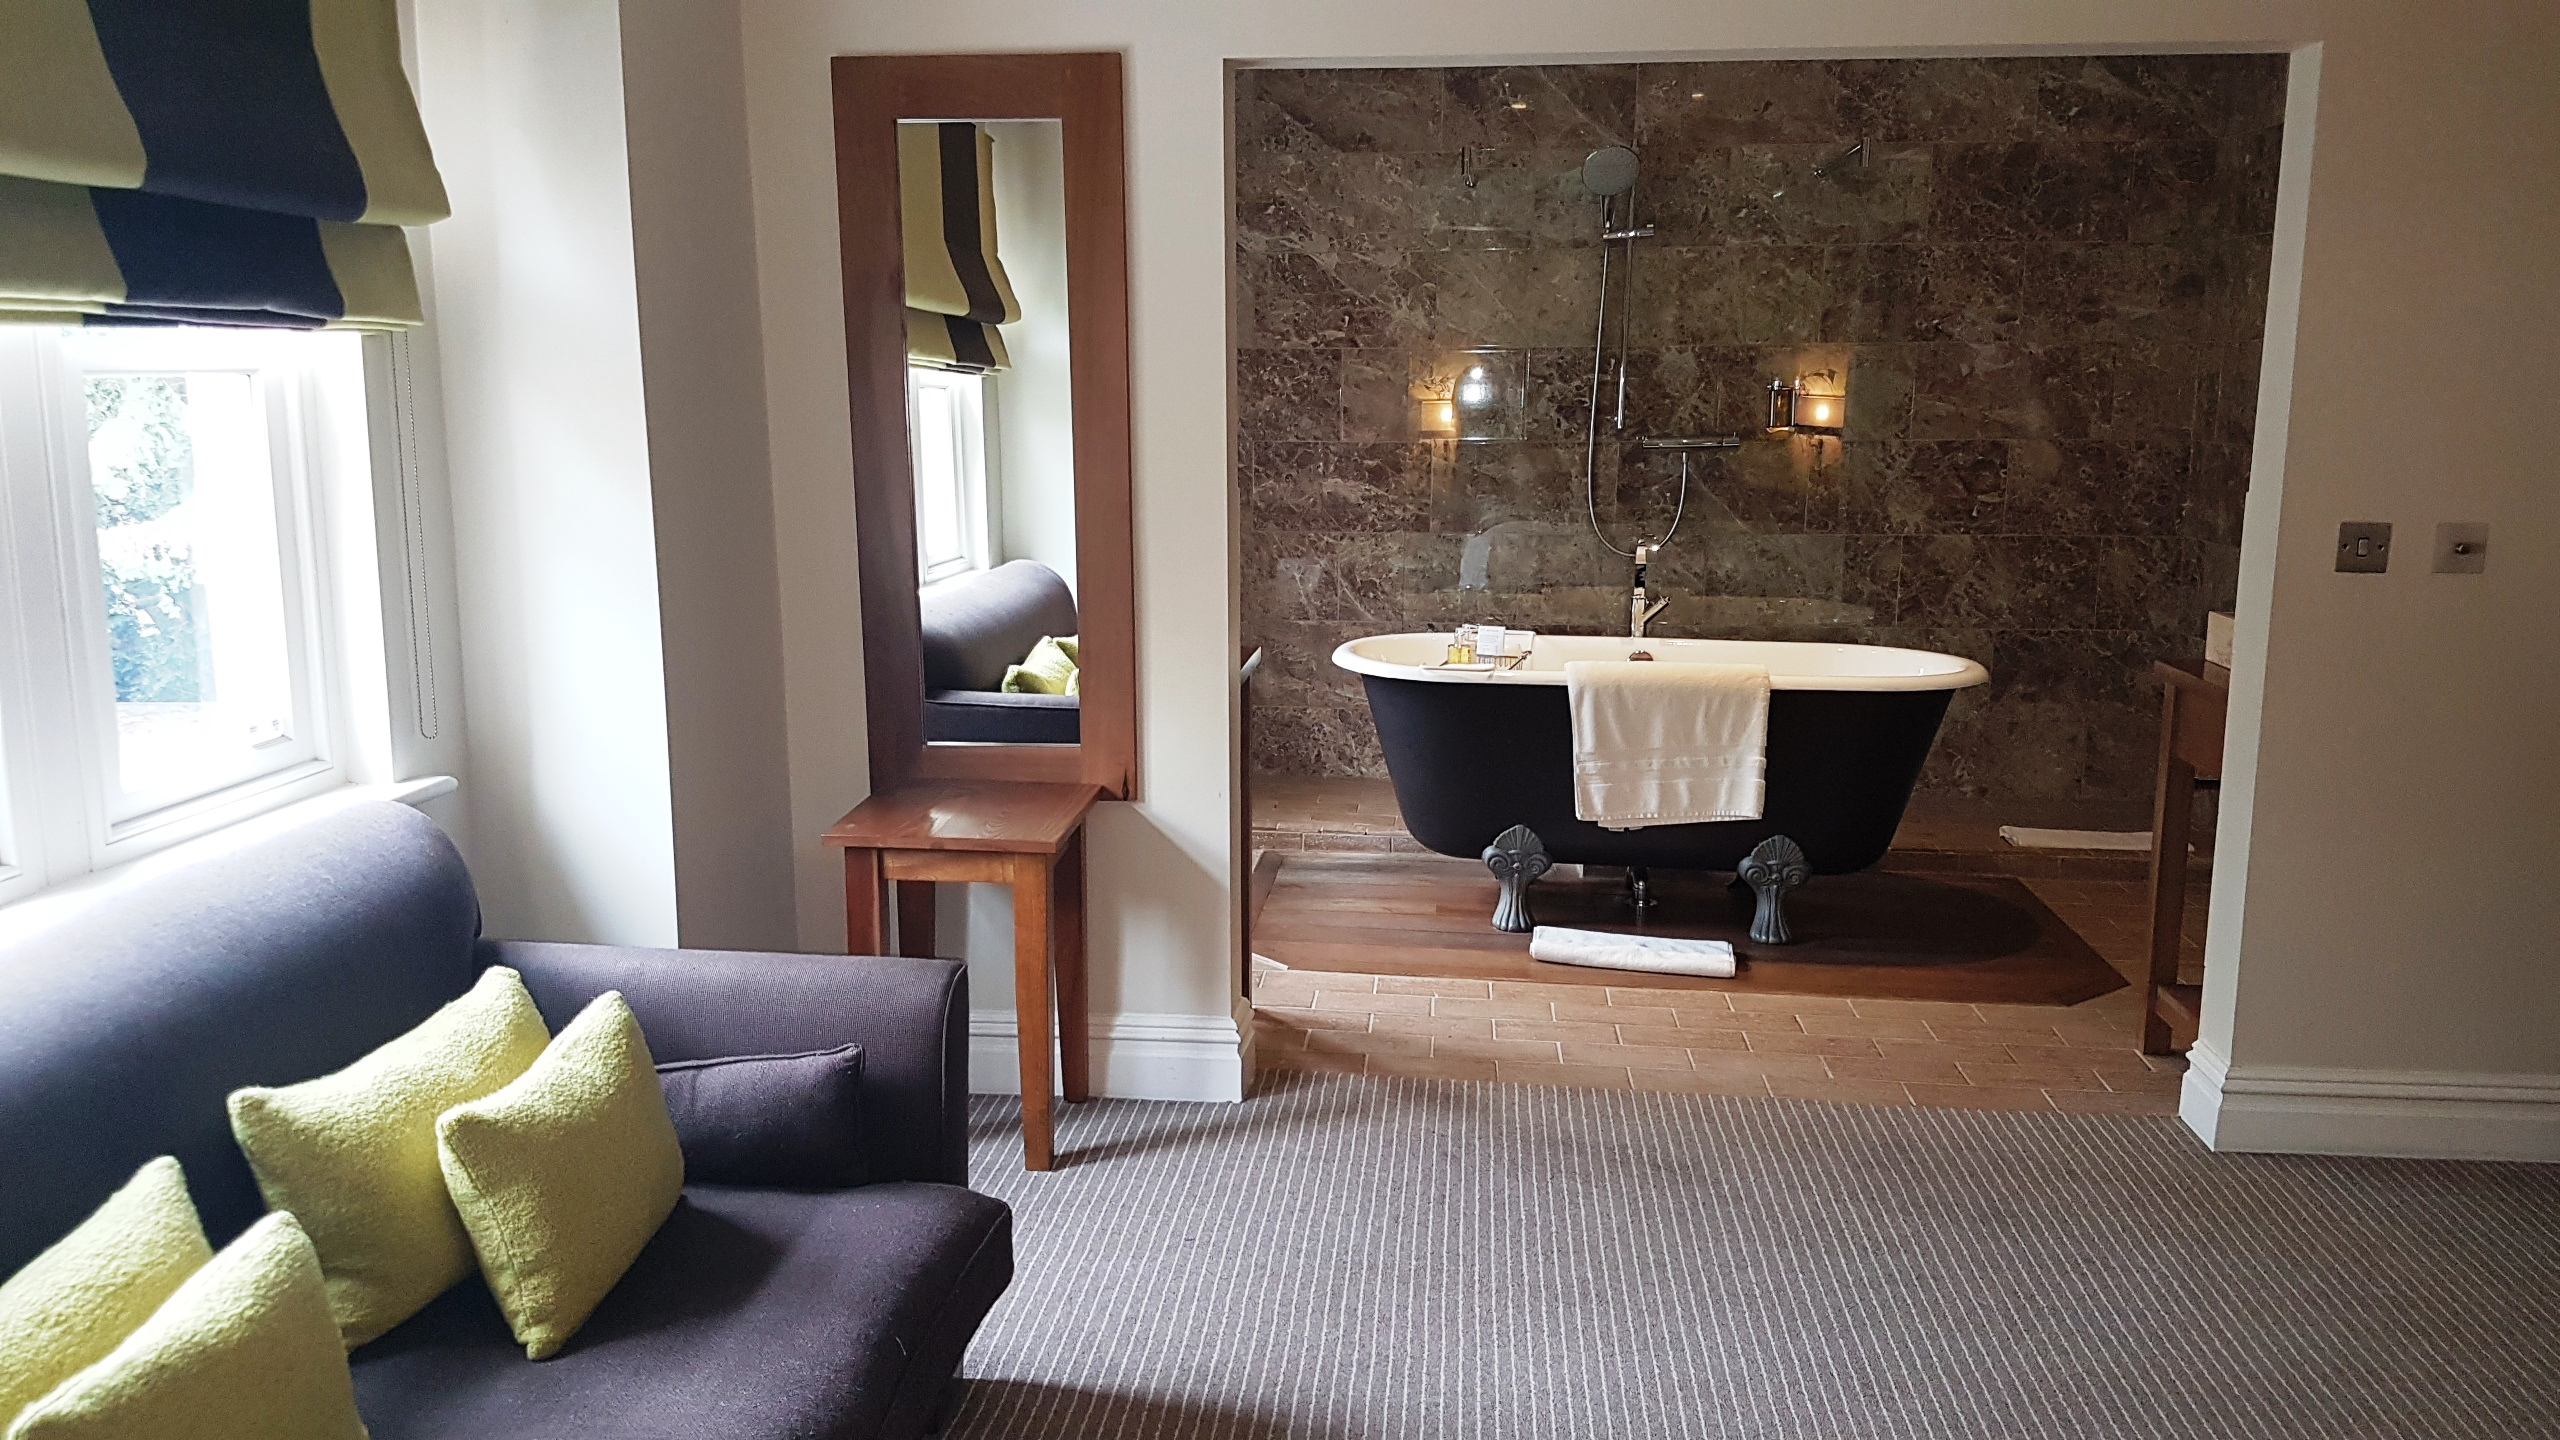 The Green House Hotel In Bournemouth An Eco Hotel South West Reviews